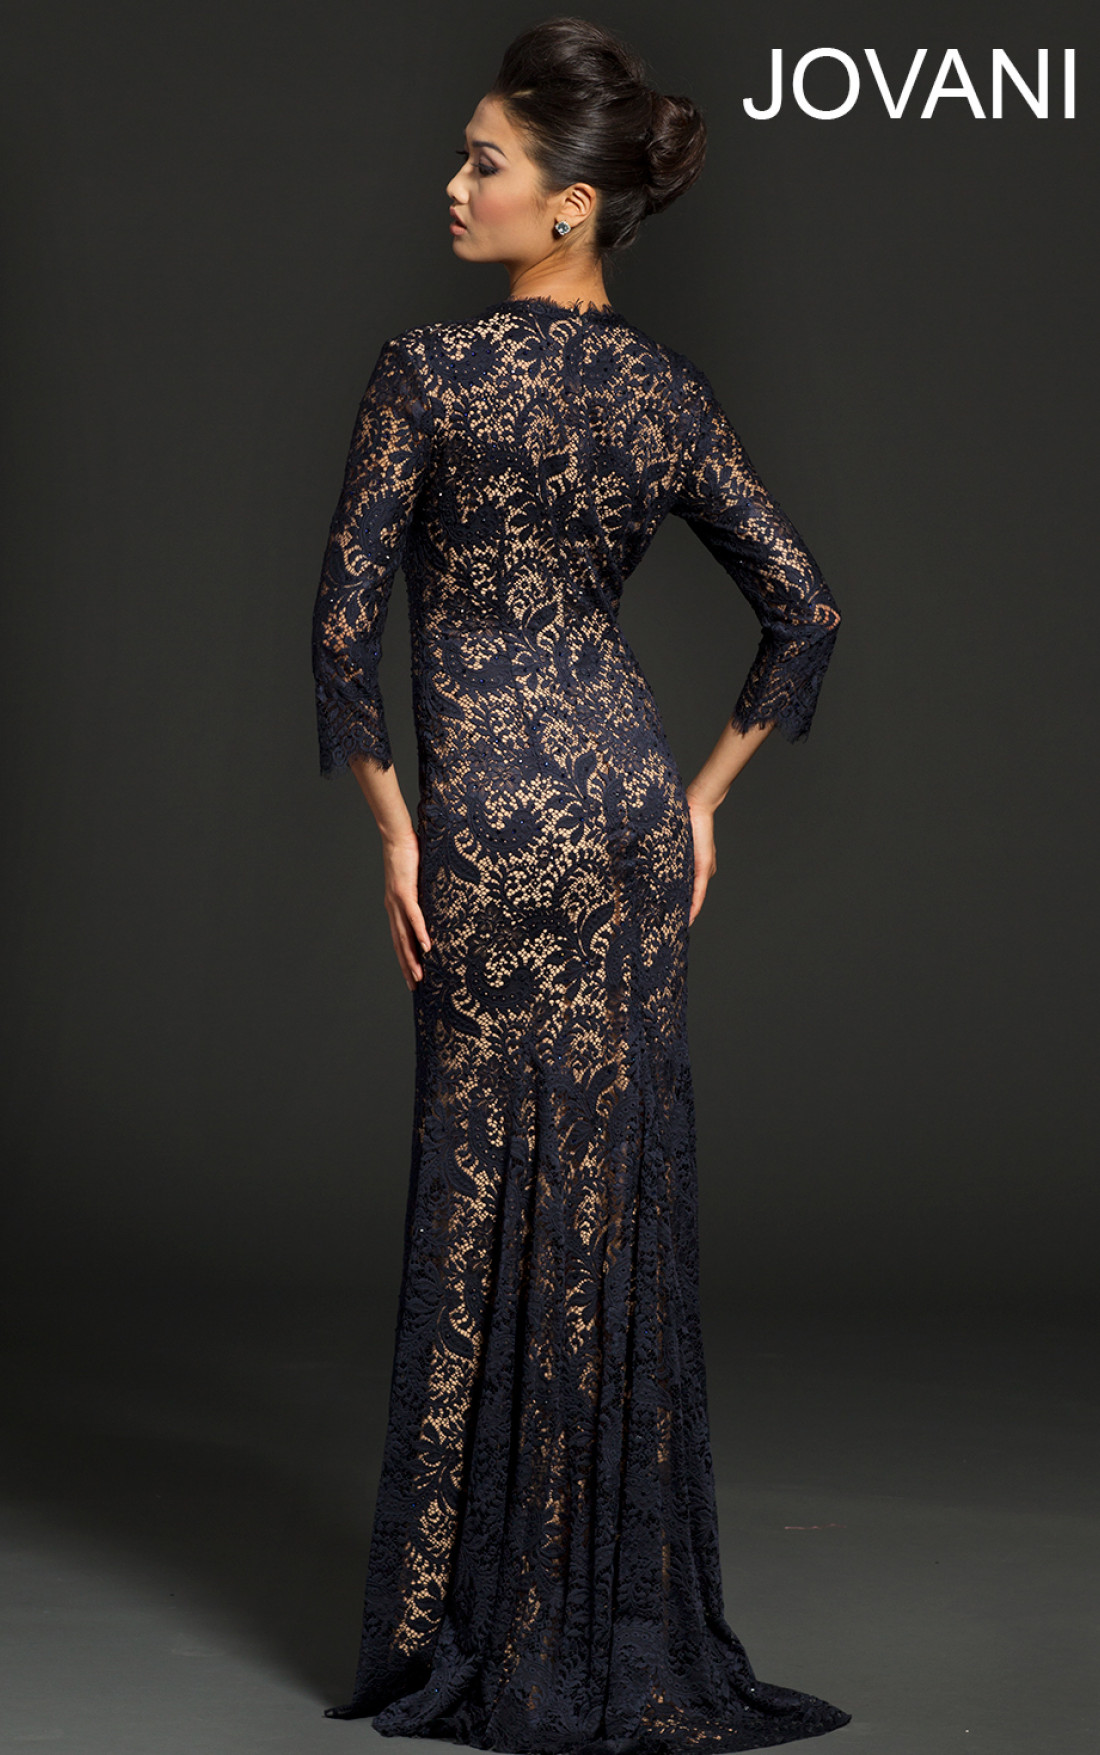 Jovani Dresses | Womens Midnight Lace Long Sleeve Evening Dress ...